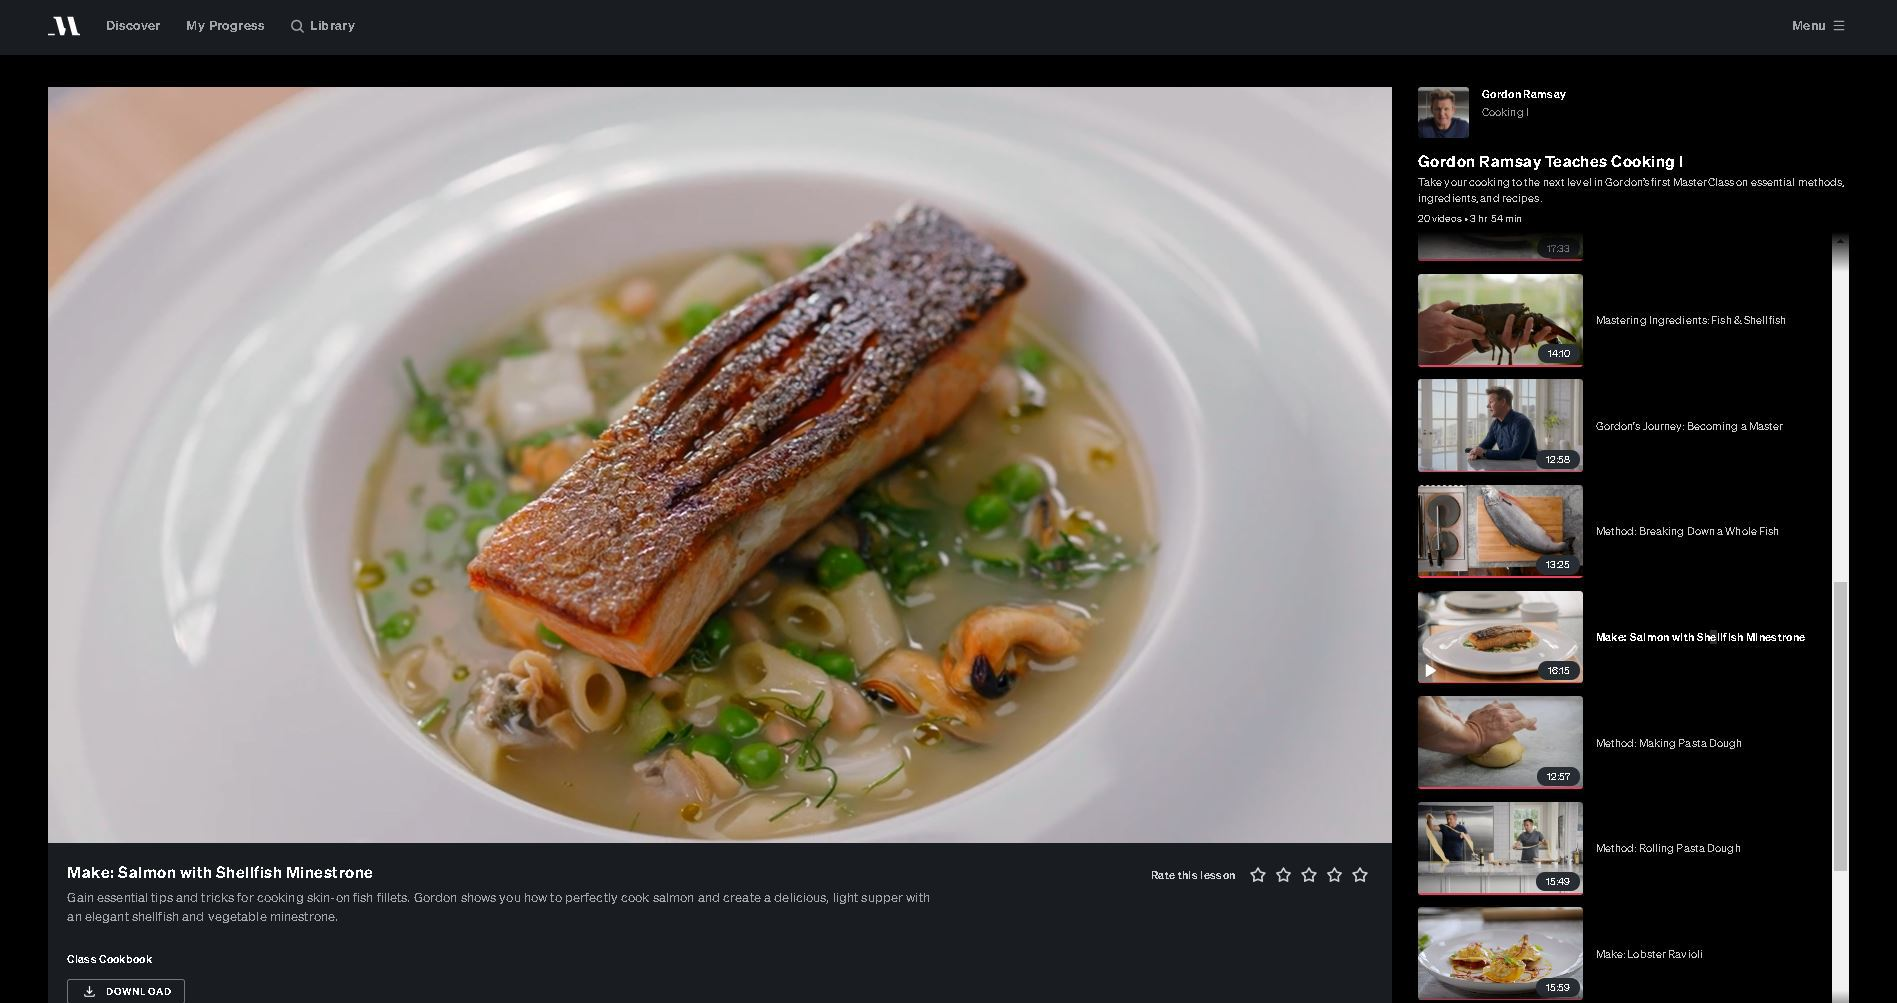 image of a seared salmon filet on top of soup